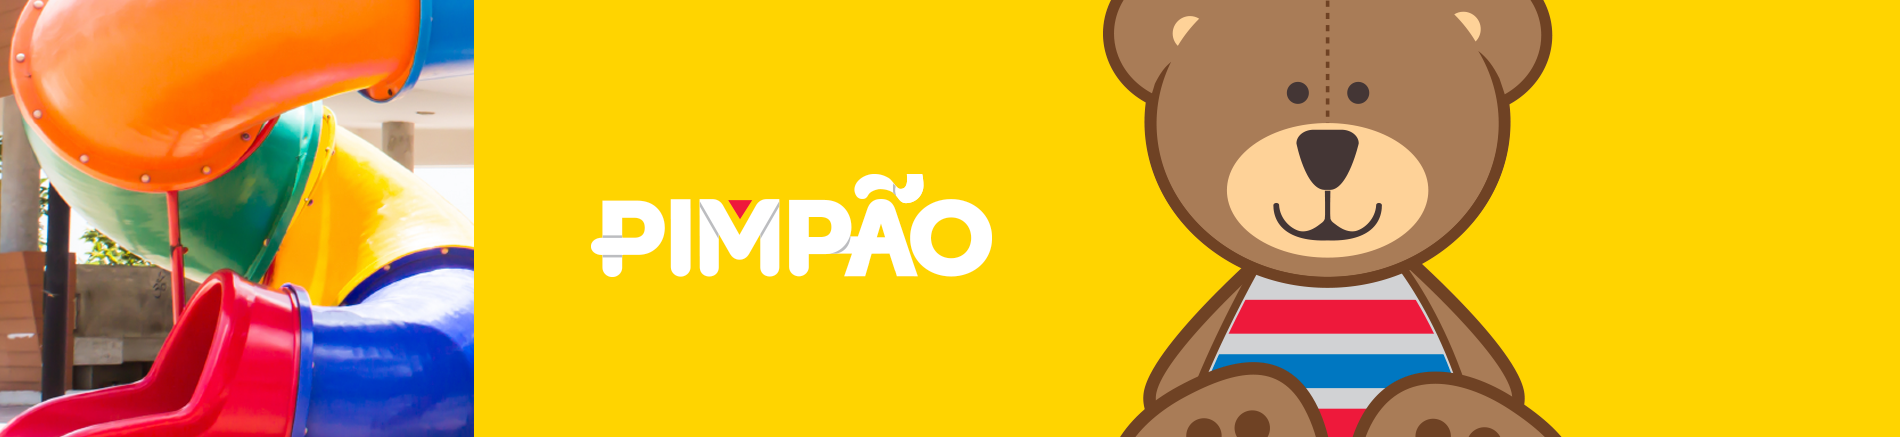 banner2_pimpao.png